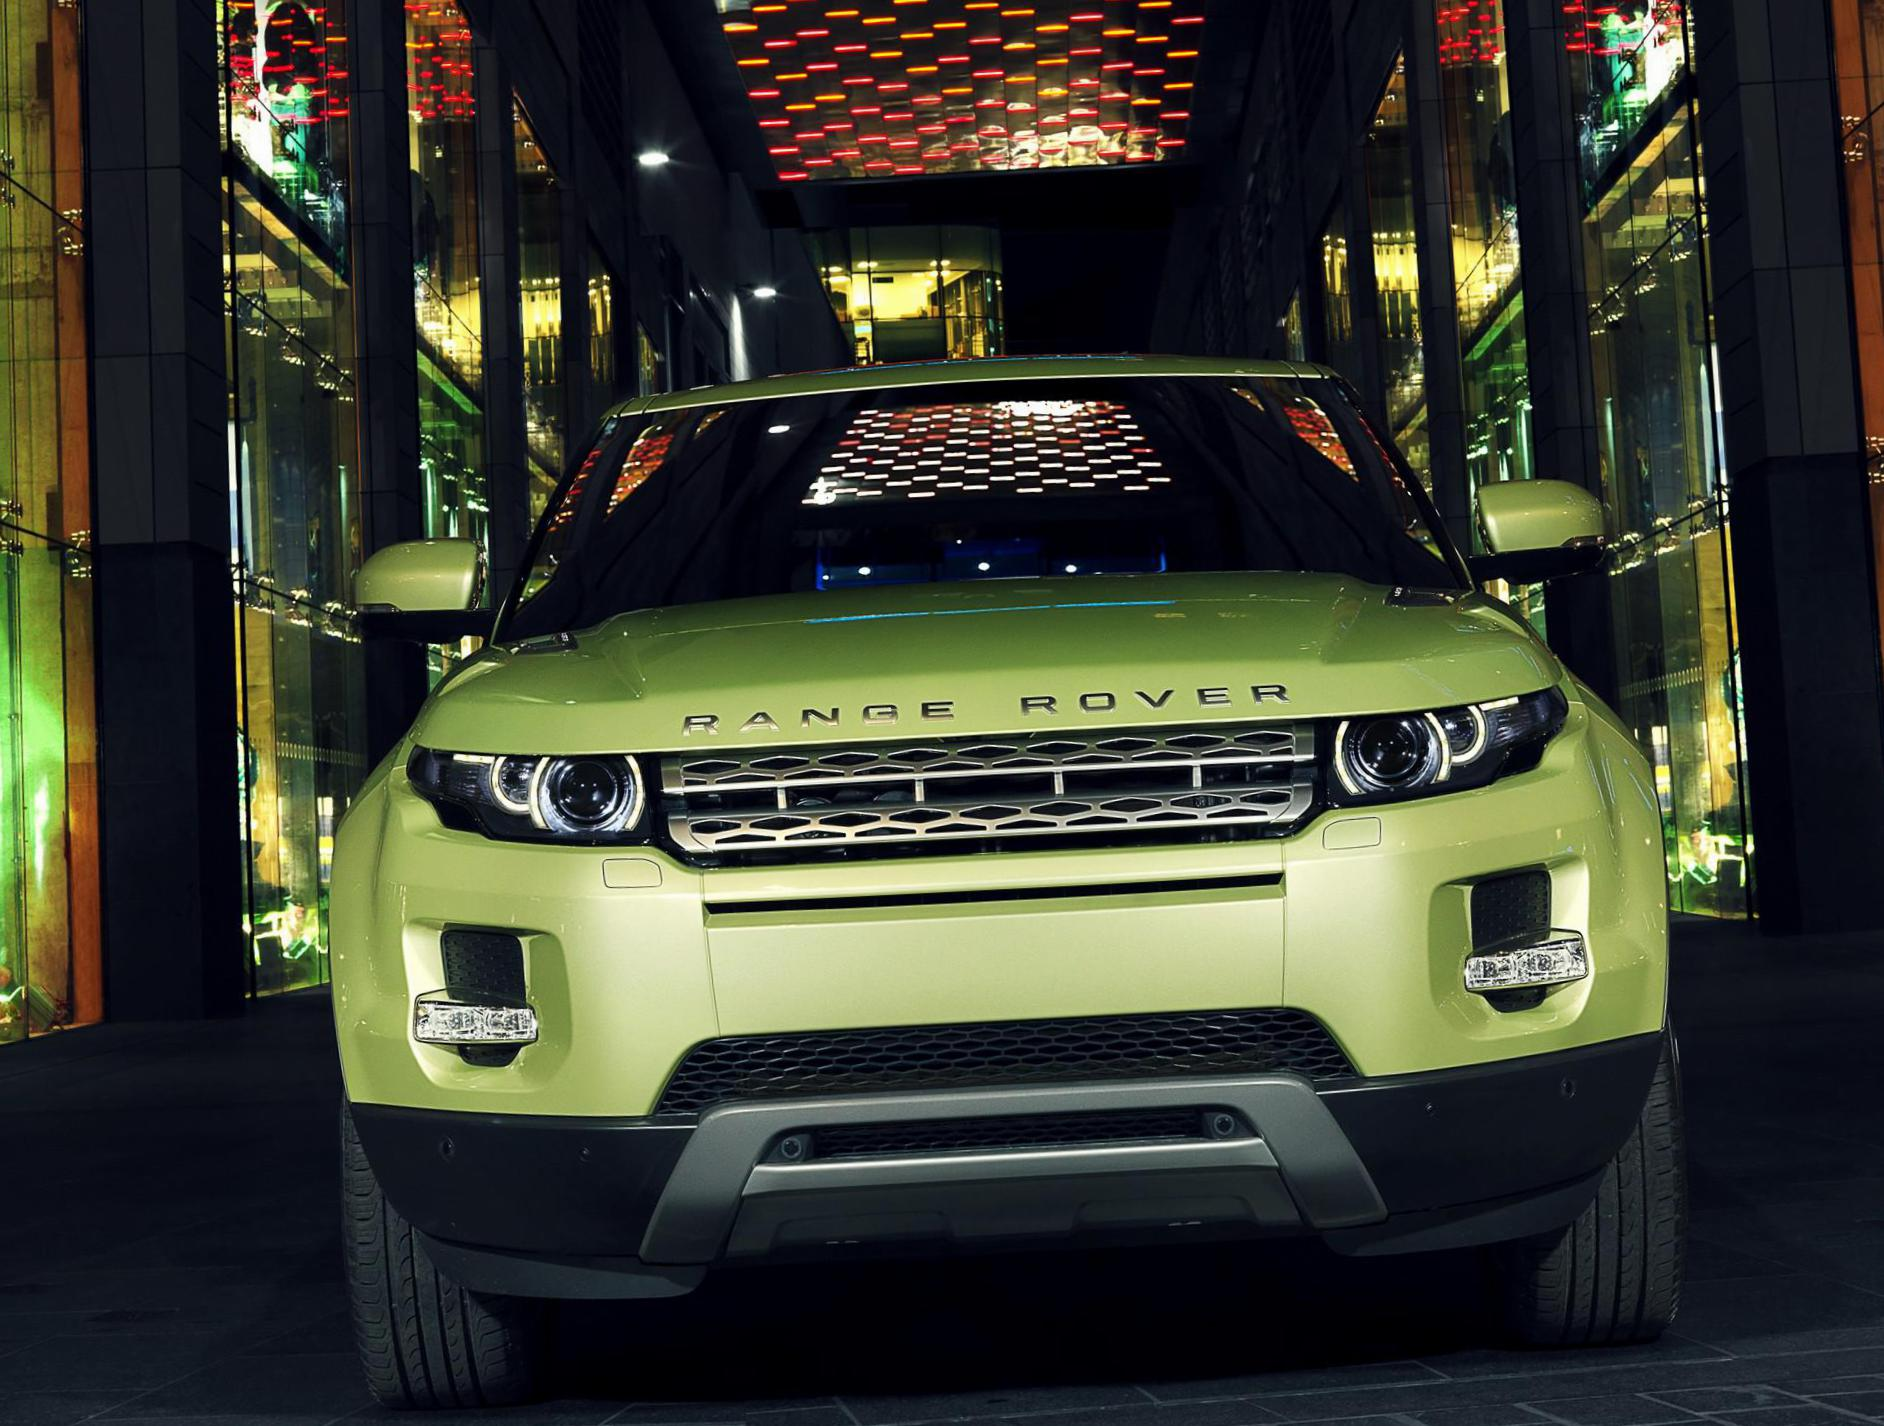 Land Rover Range Rover Evoque Coupe used sedan